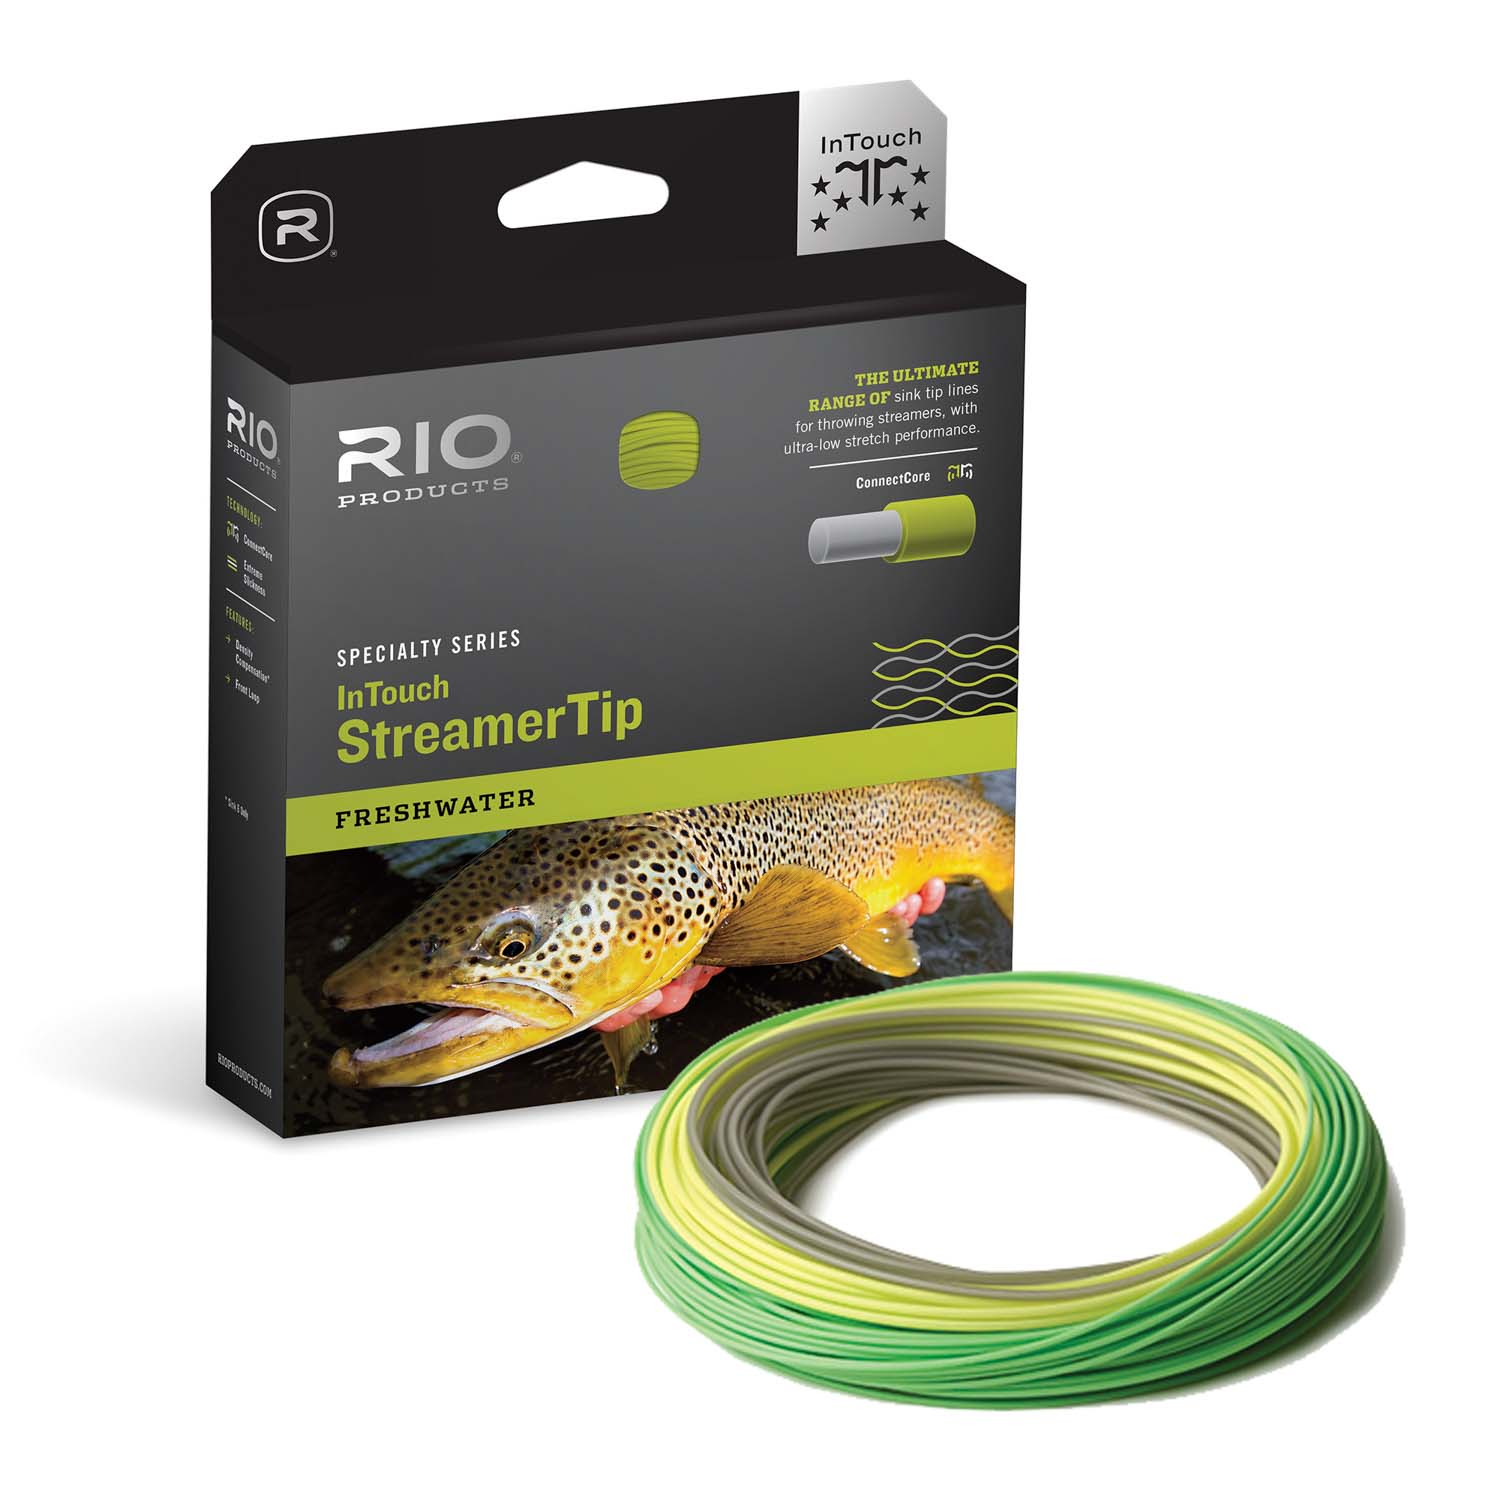 In Touch Streamer Tip Box + Spool